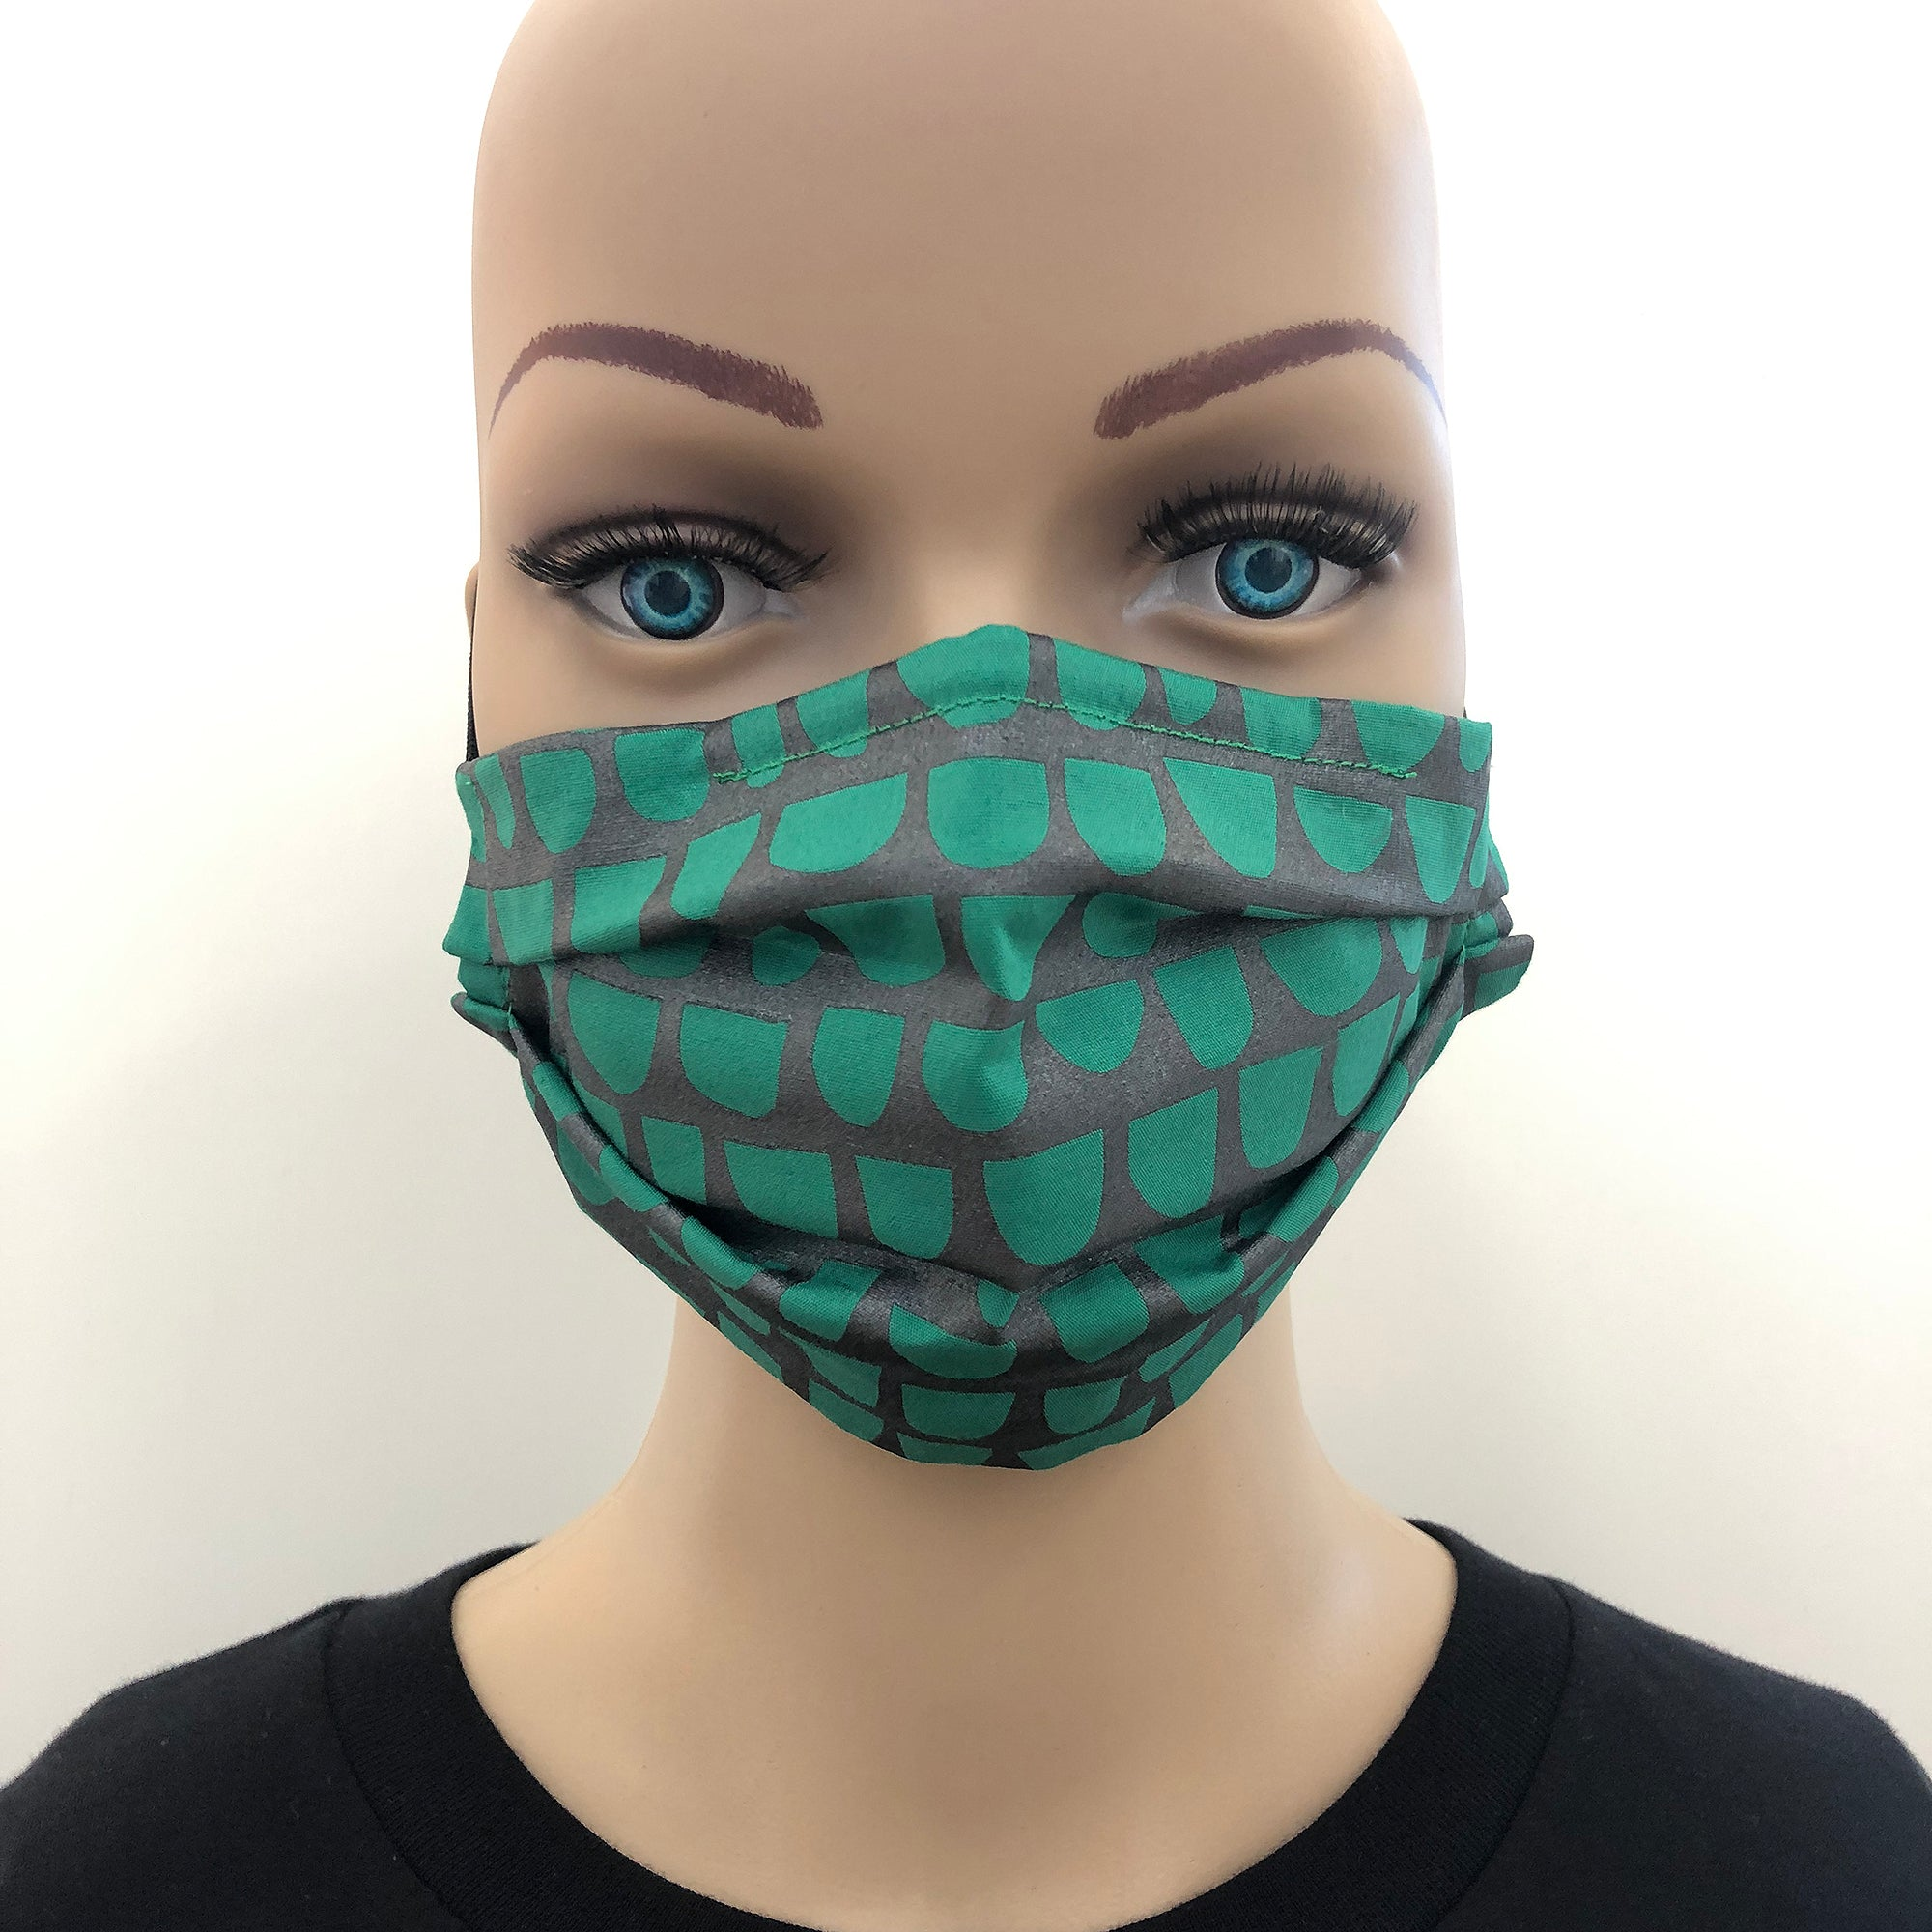 Face mask in sparkly black and green print - Inspired